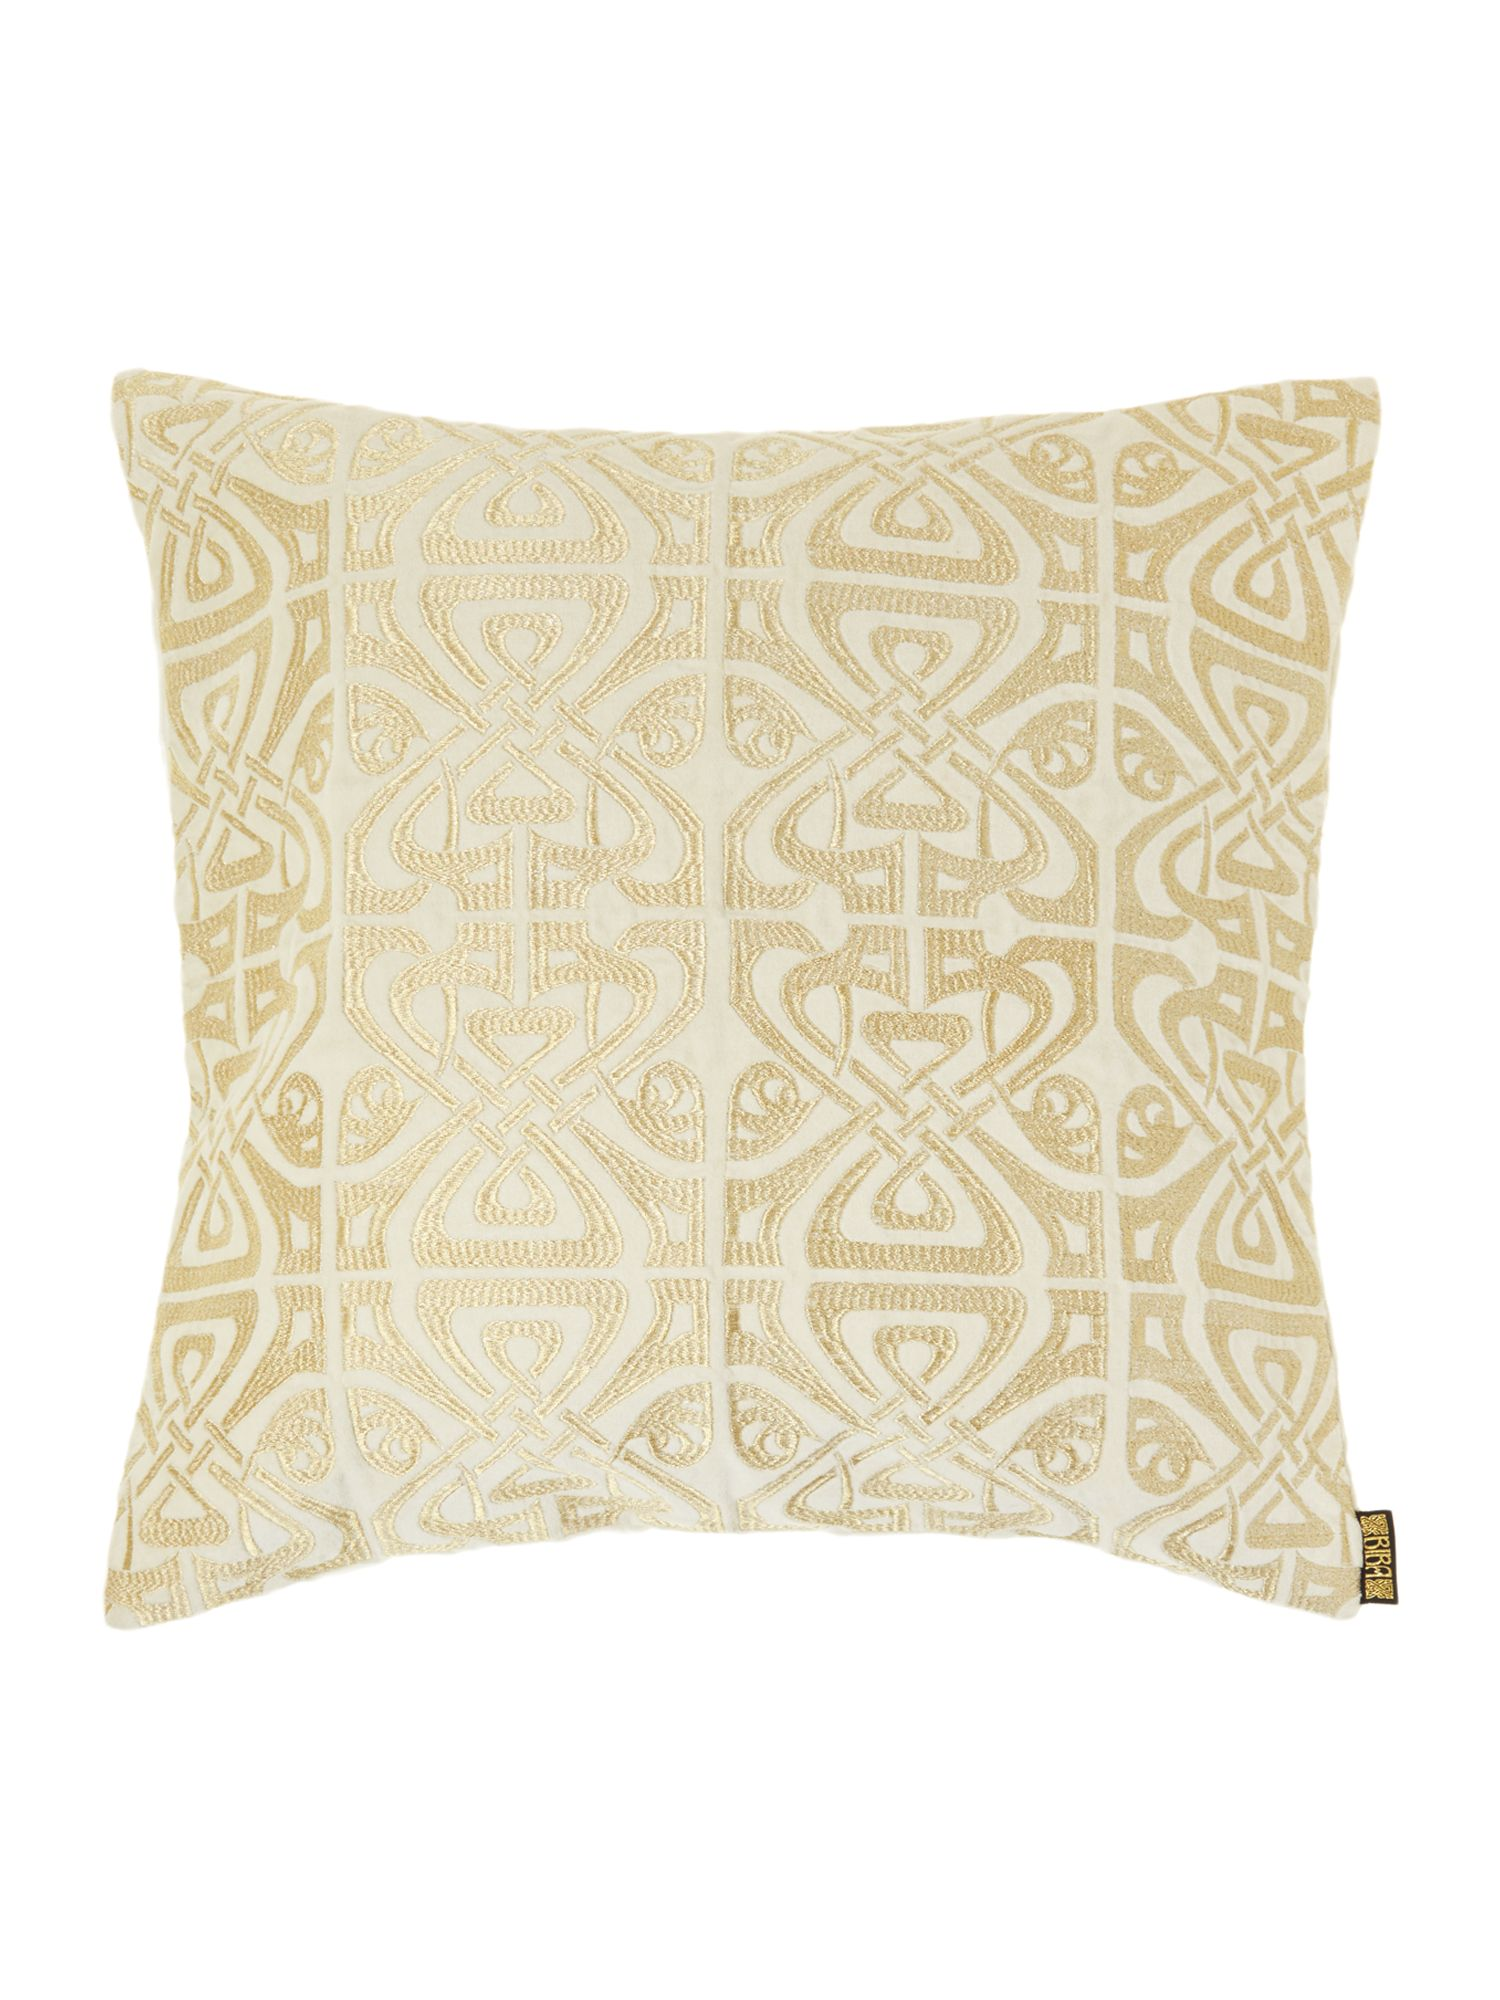 Cream velvet Biba logo cushion